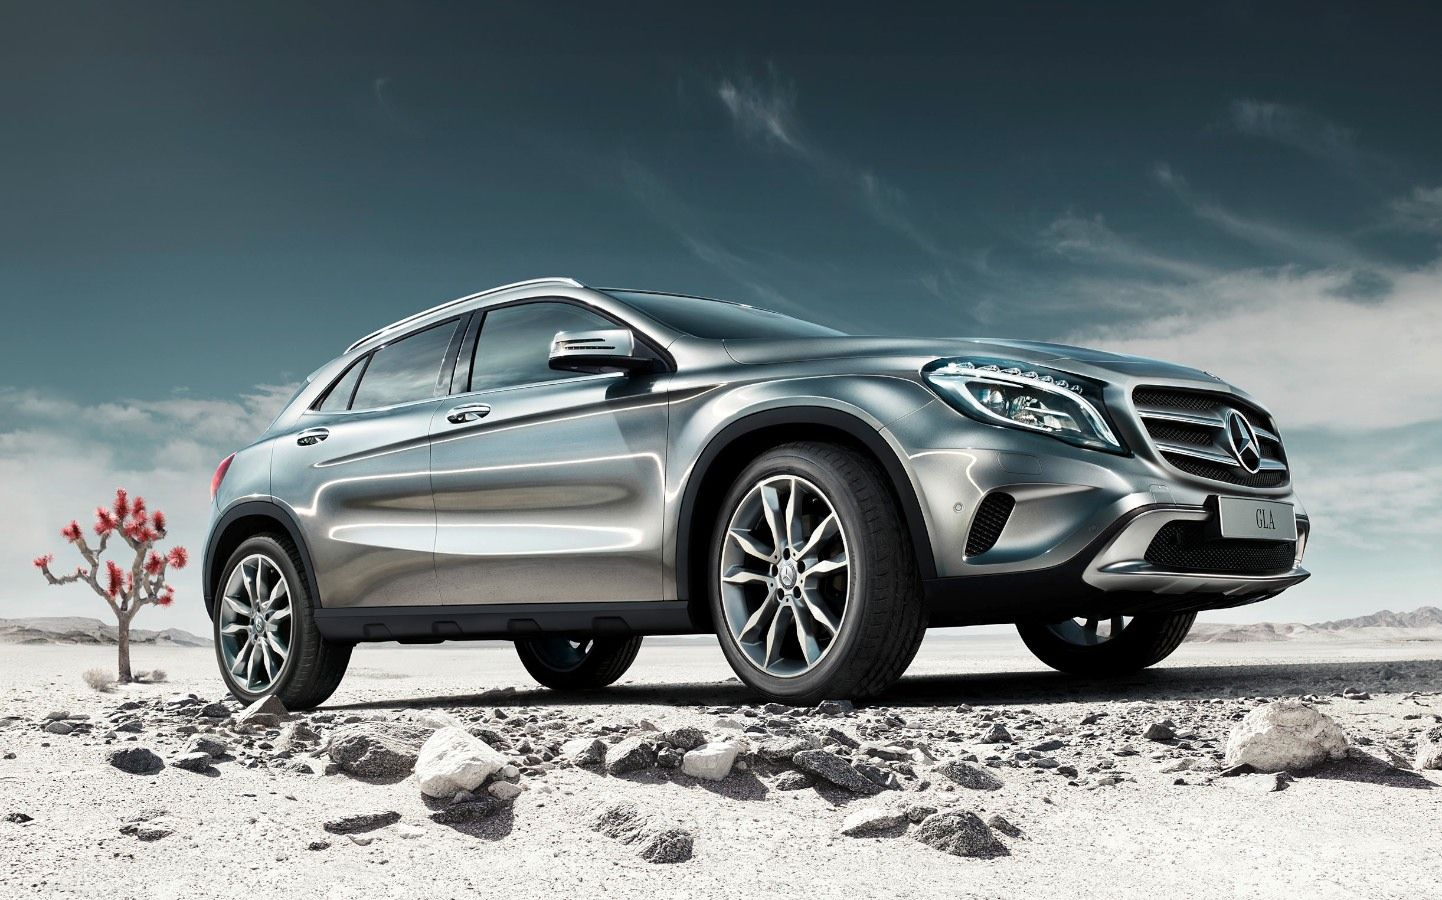 The Scope Mercedes Benz Gla Suv Models Used Mercedes Benz